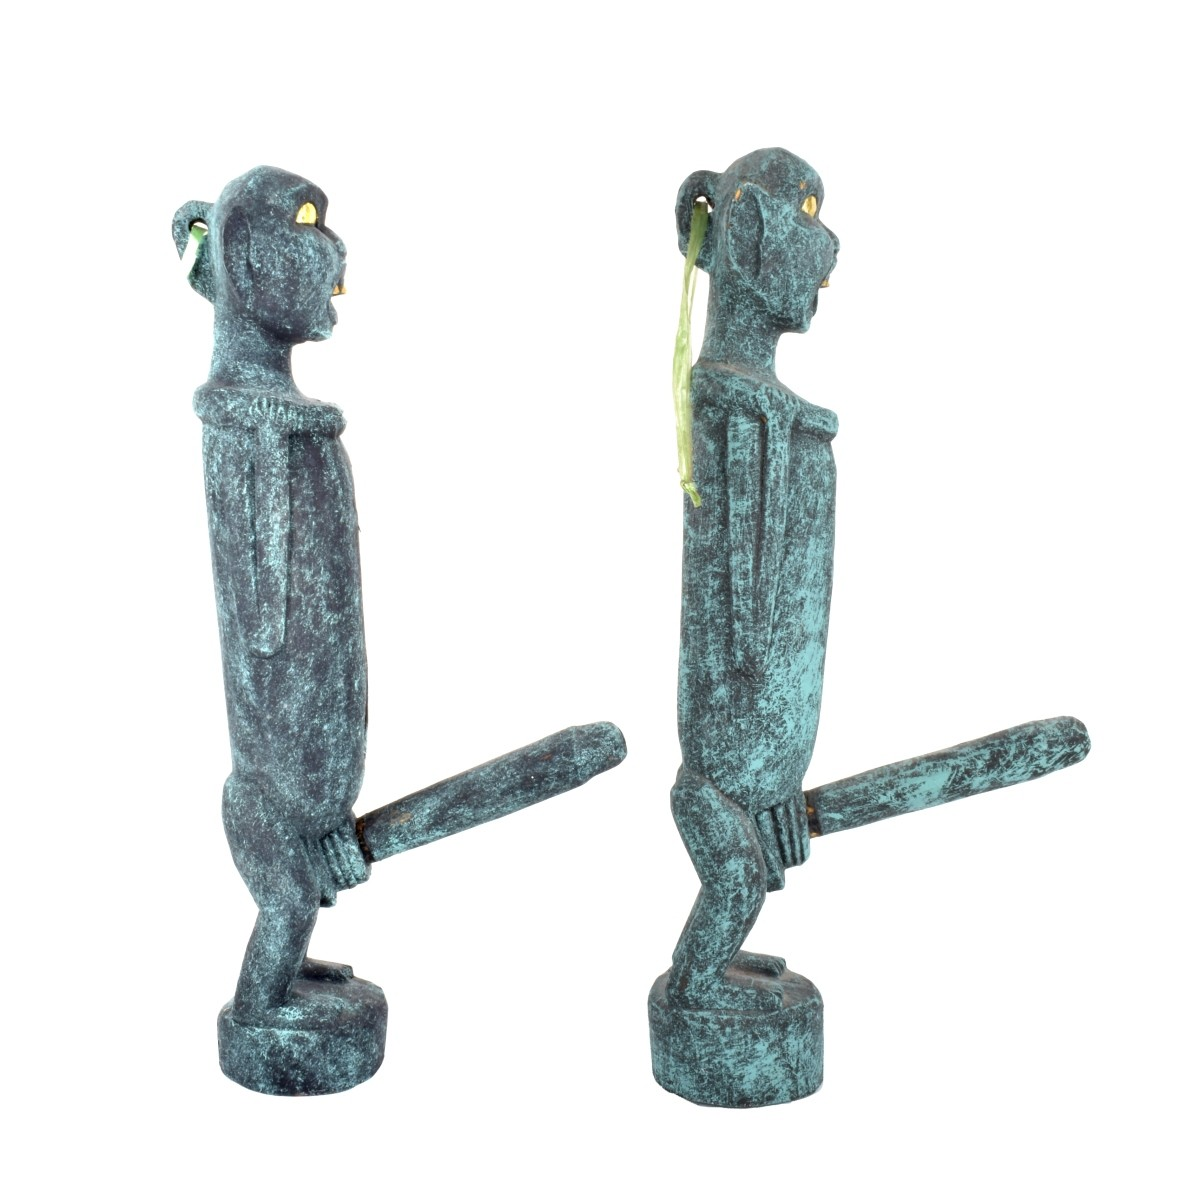 Pair of Fertility Figures